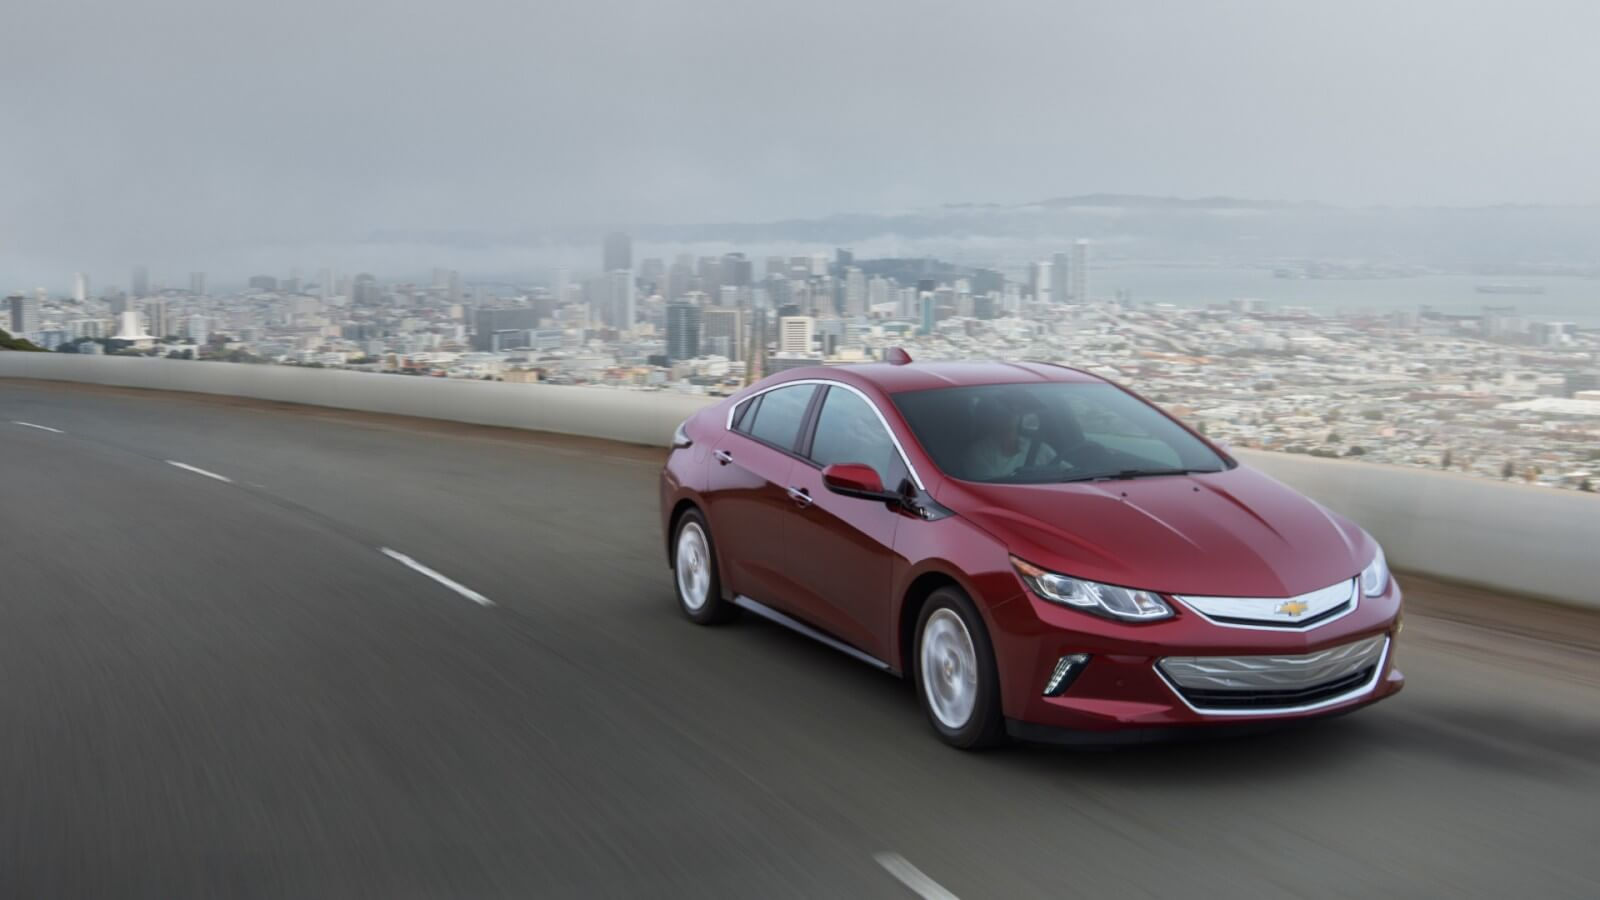 2016 Chevrolet Volt red model on the road